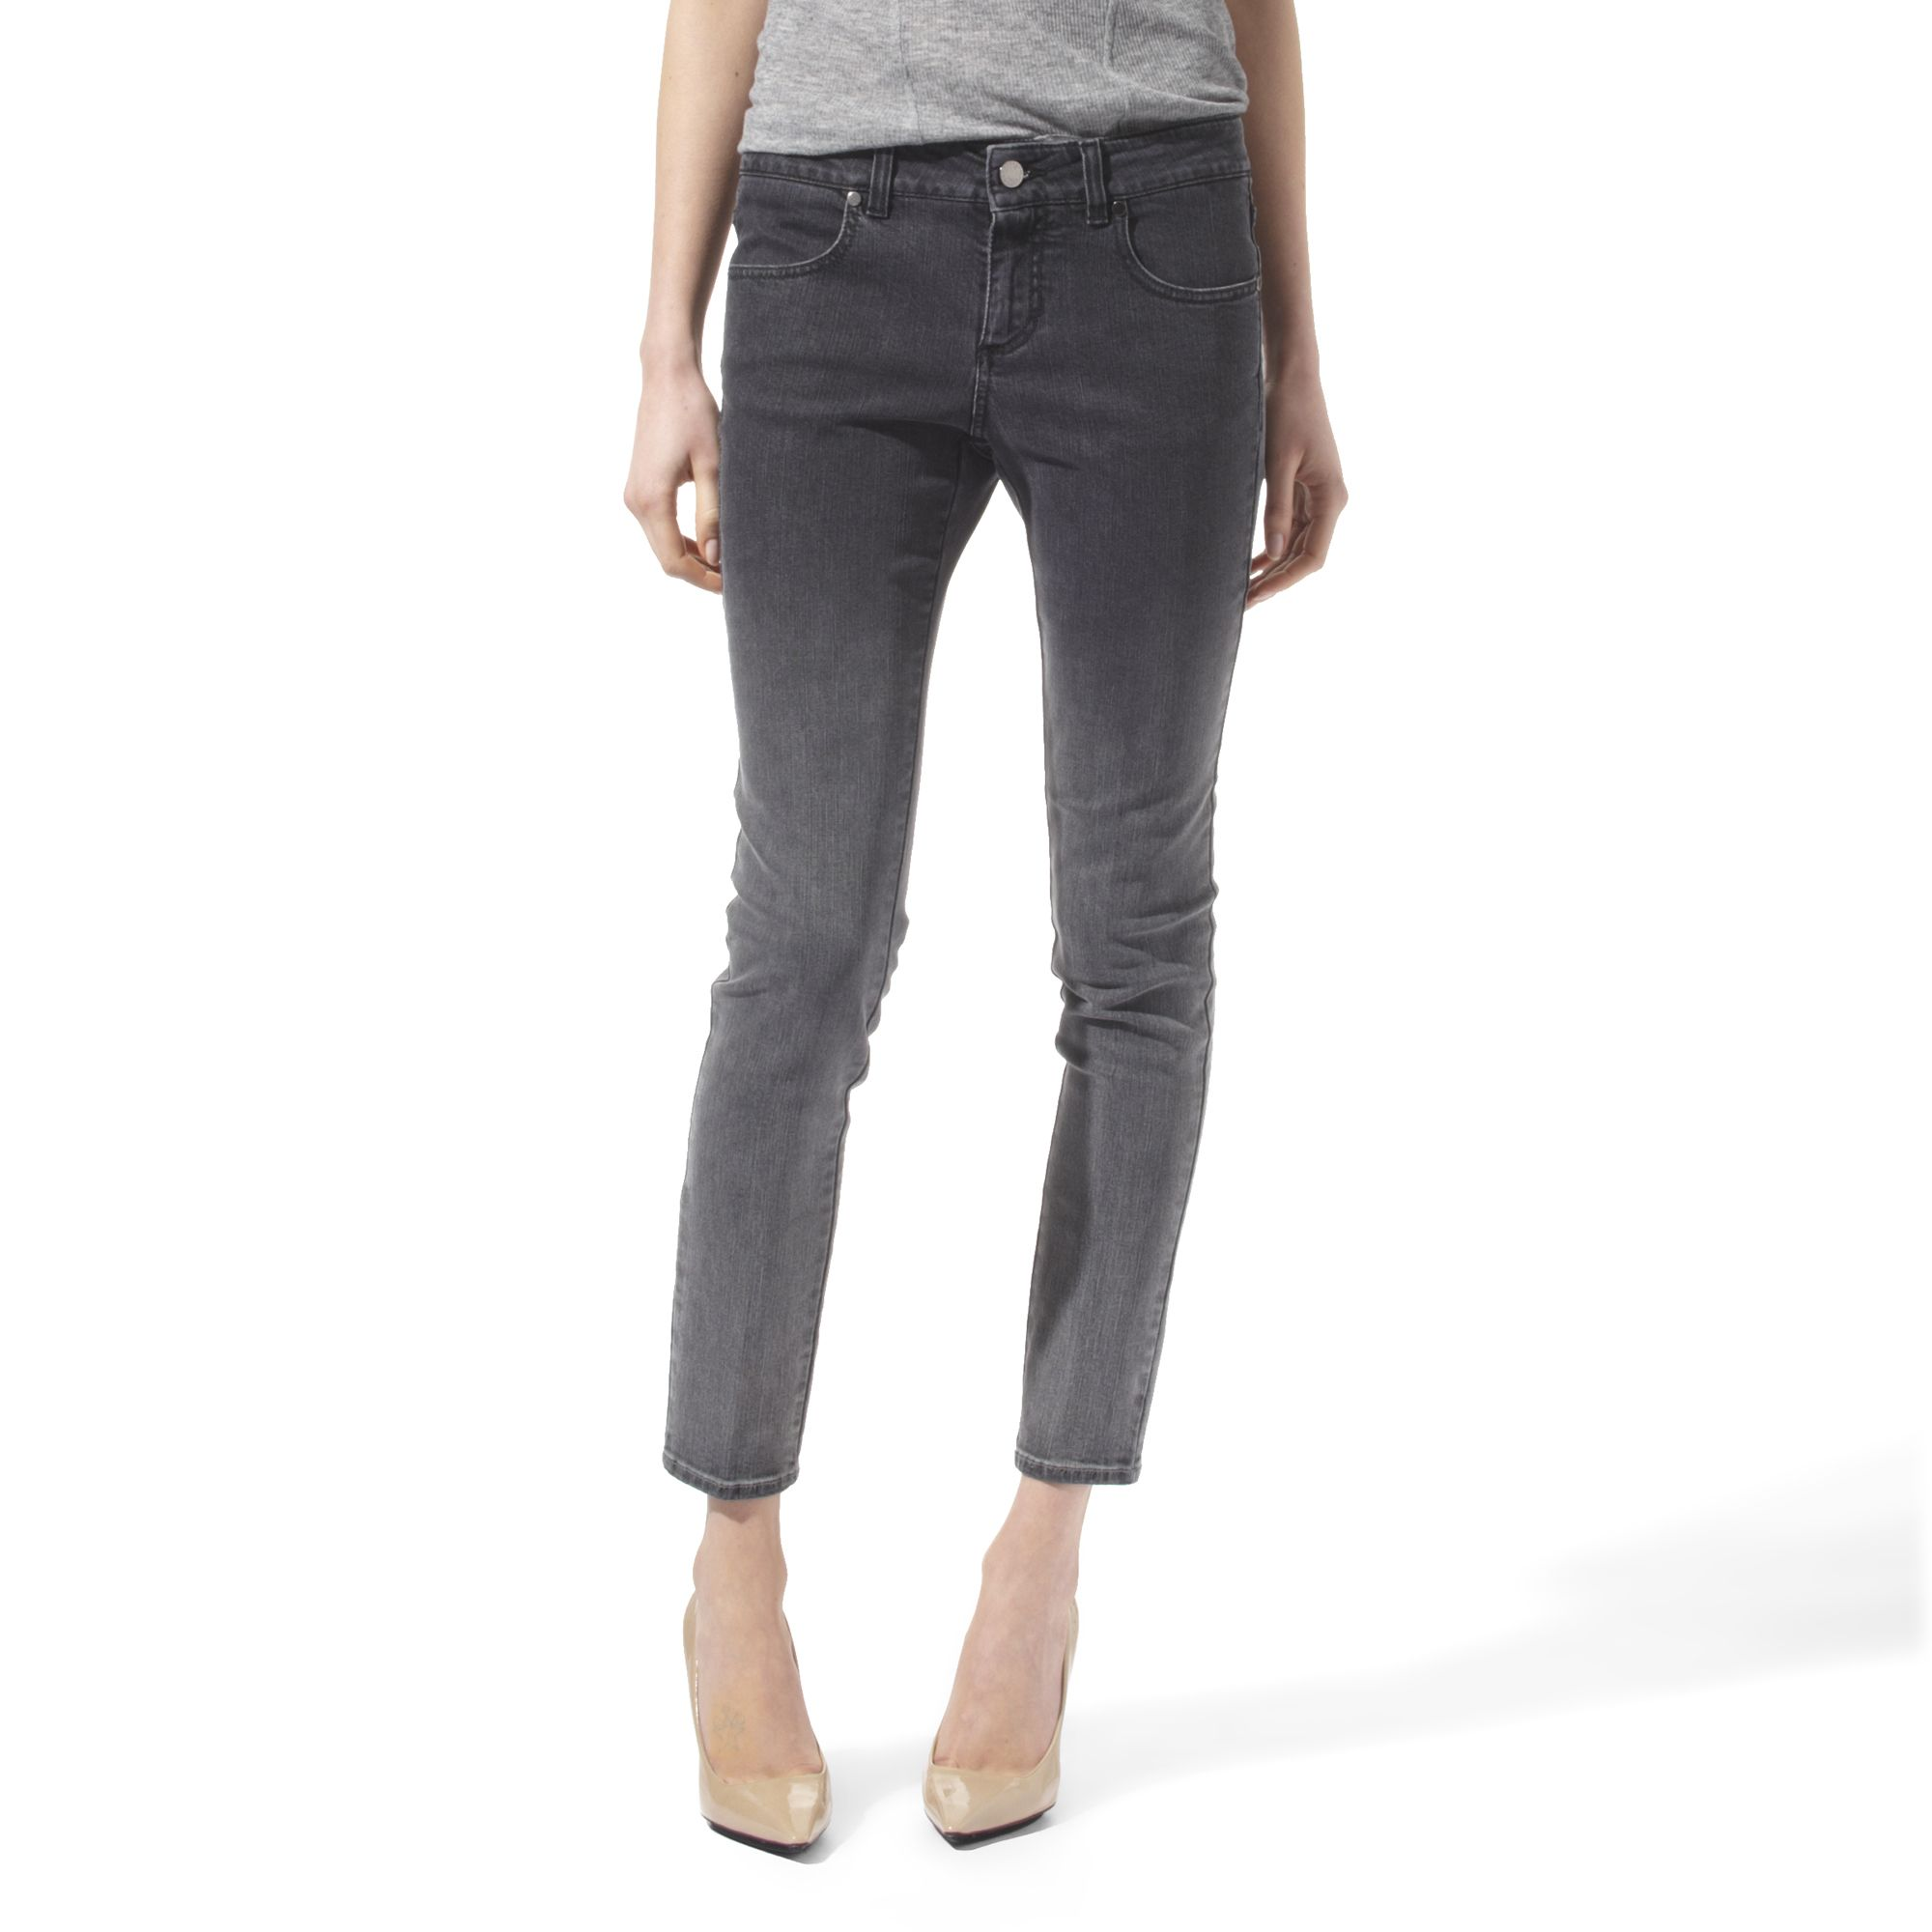 stella mccartney skinny ankle grazer grey degrade jeans in gray grey lyst. Black Bedroom Furniture Sets. Home Design Ideas